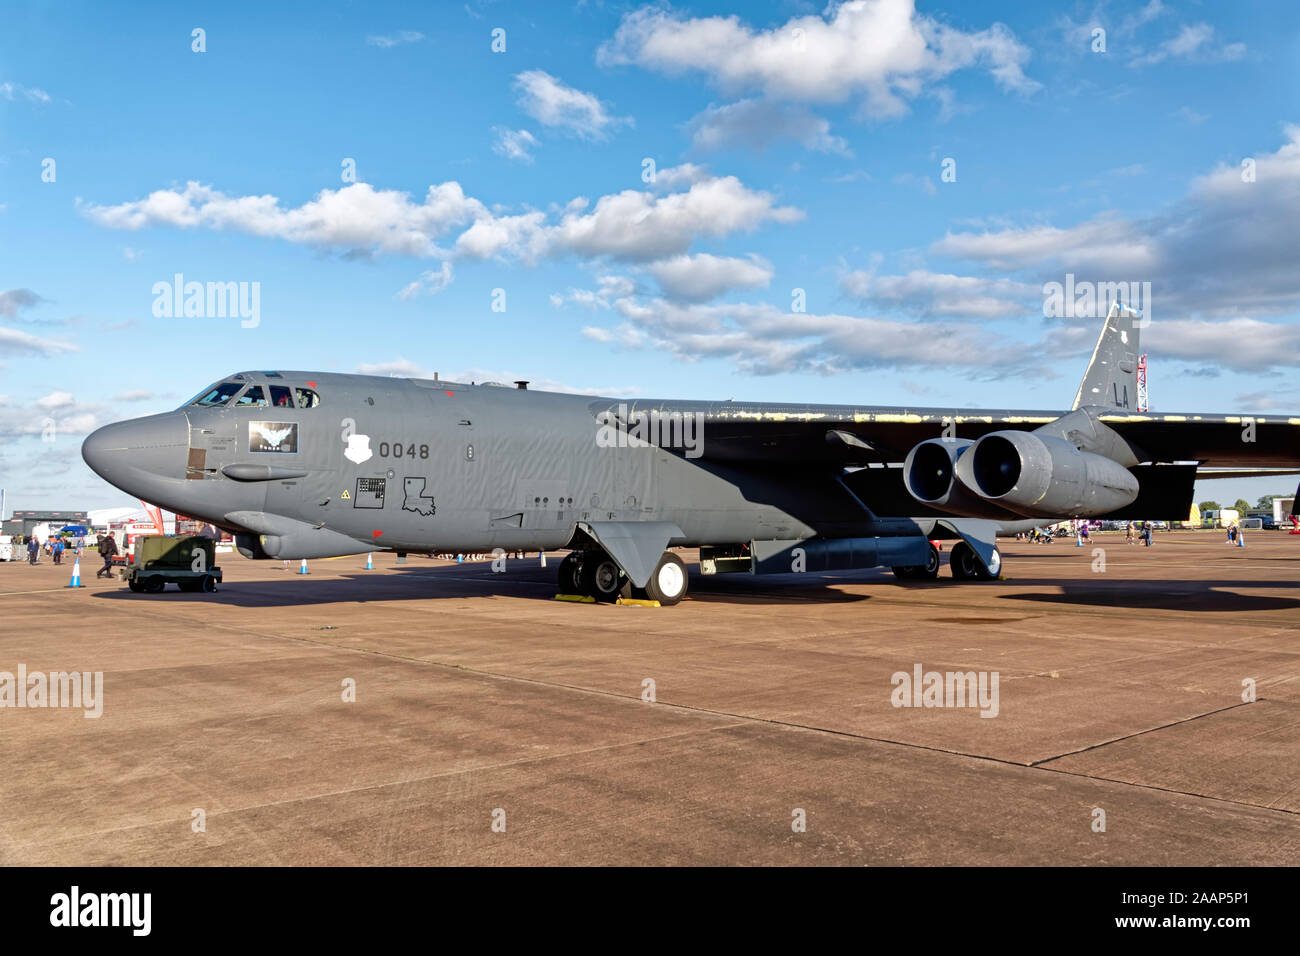 United States Air Force B-52H Stratofortress, 60-0048/LA,of the 2nd BW/20th BS, Barksdale Air Force Base, Louisiana Stock Photo